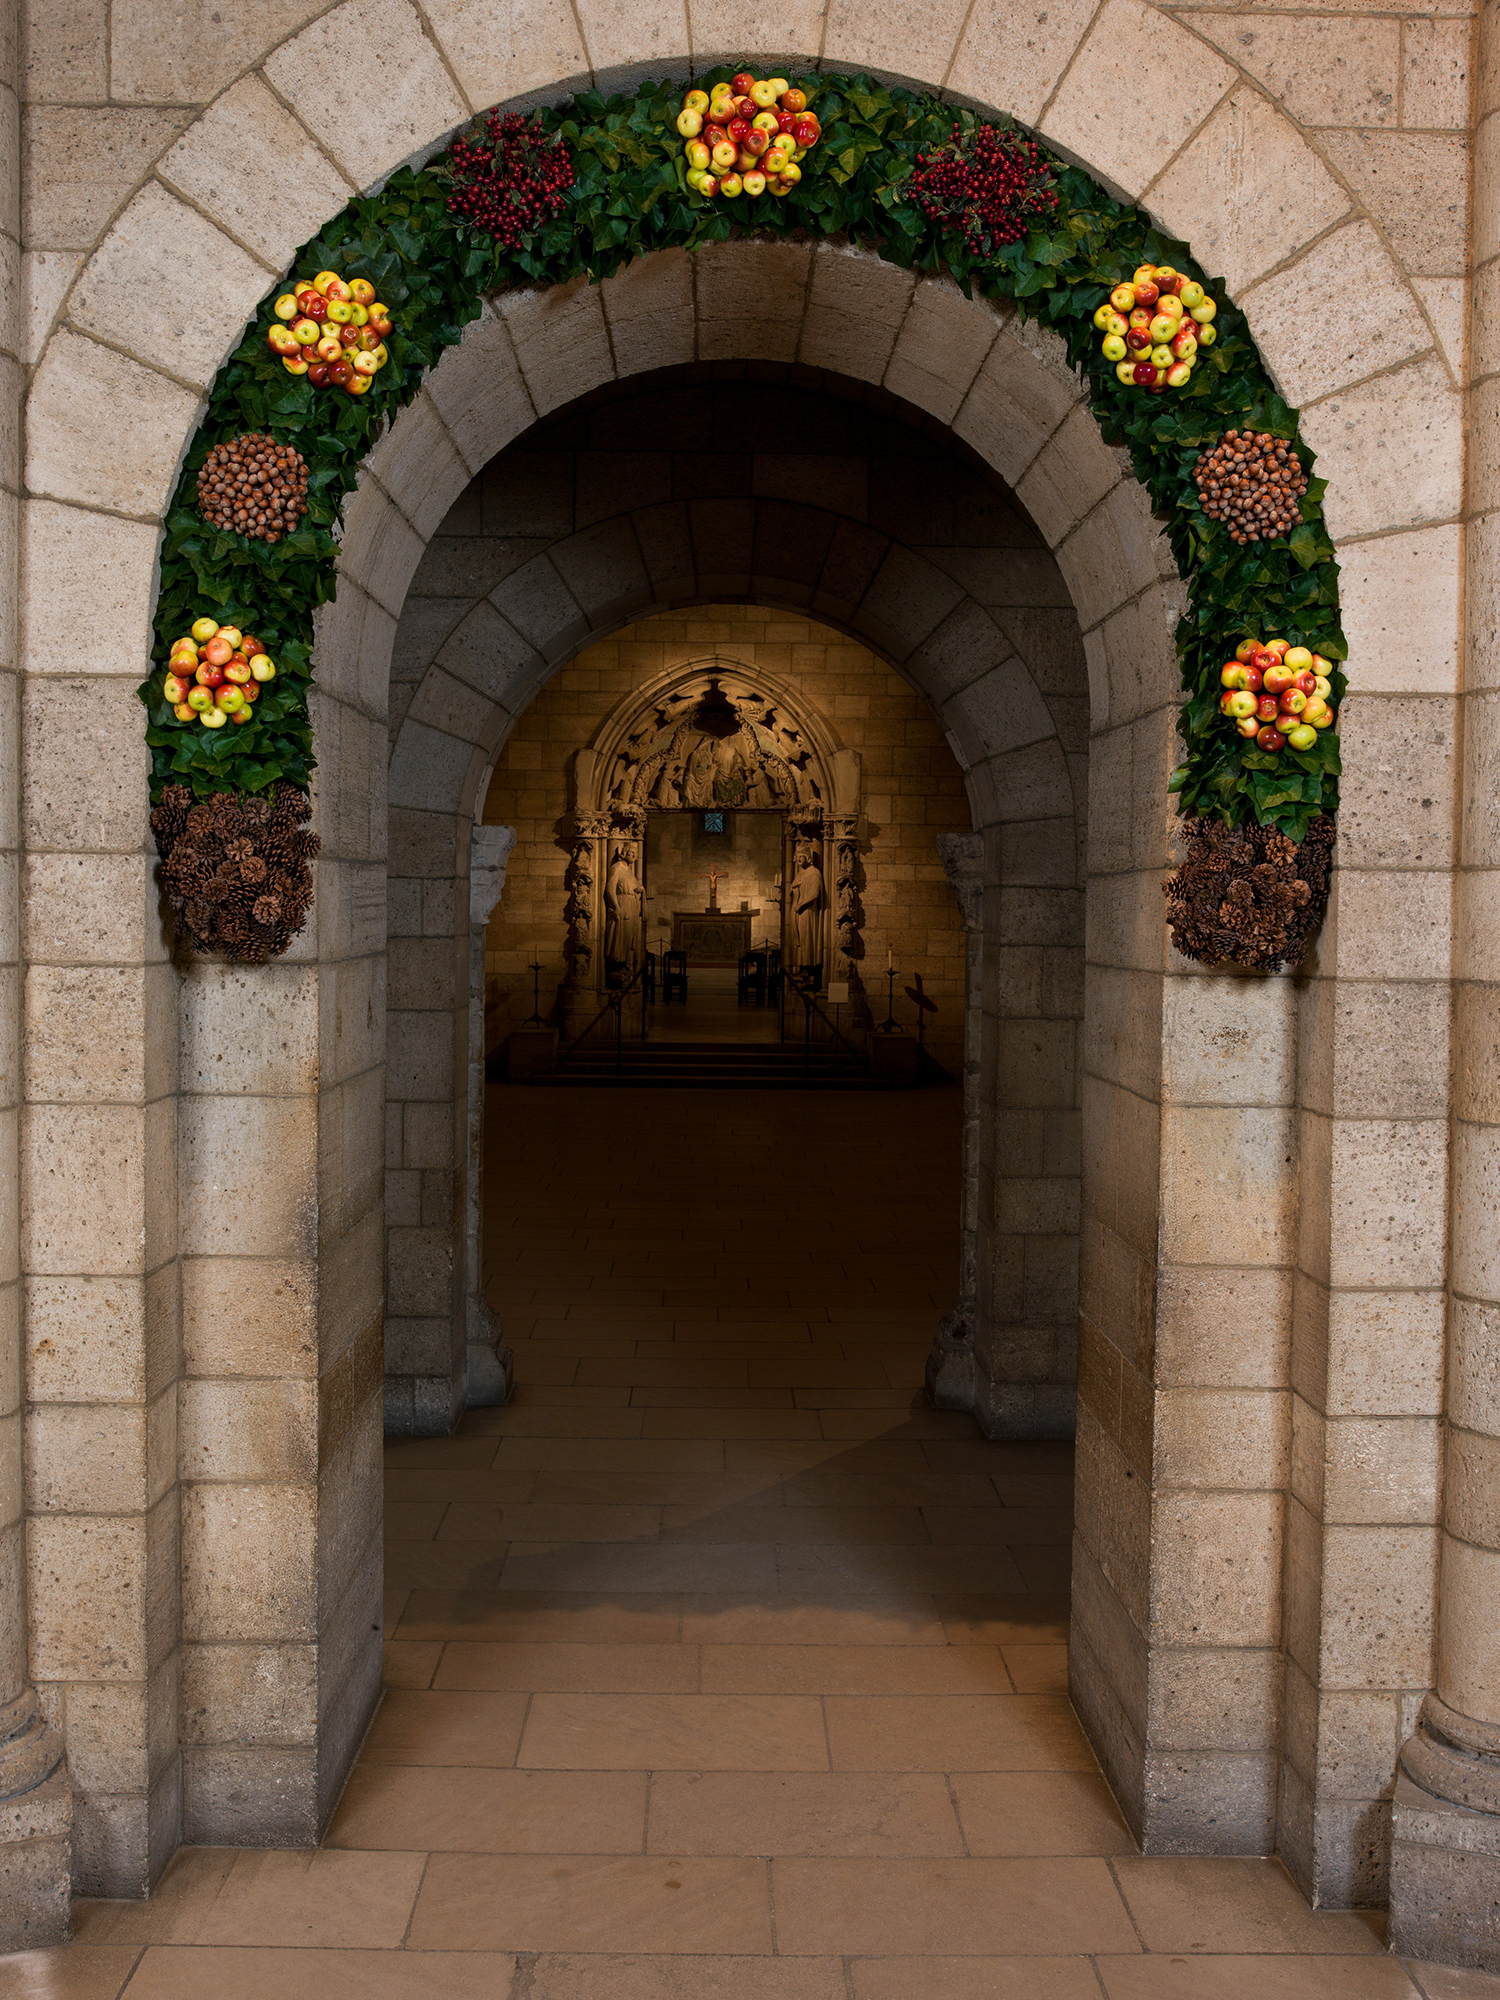 Decorated entry at The Cloisters during Christmas in NYC